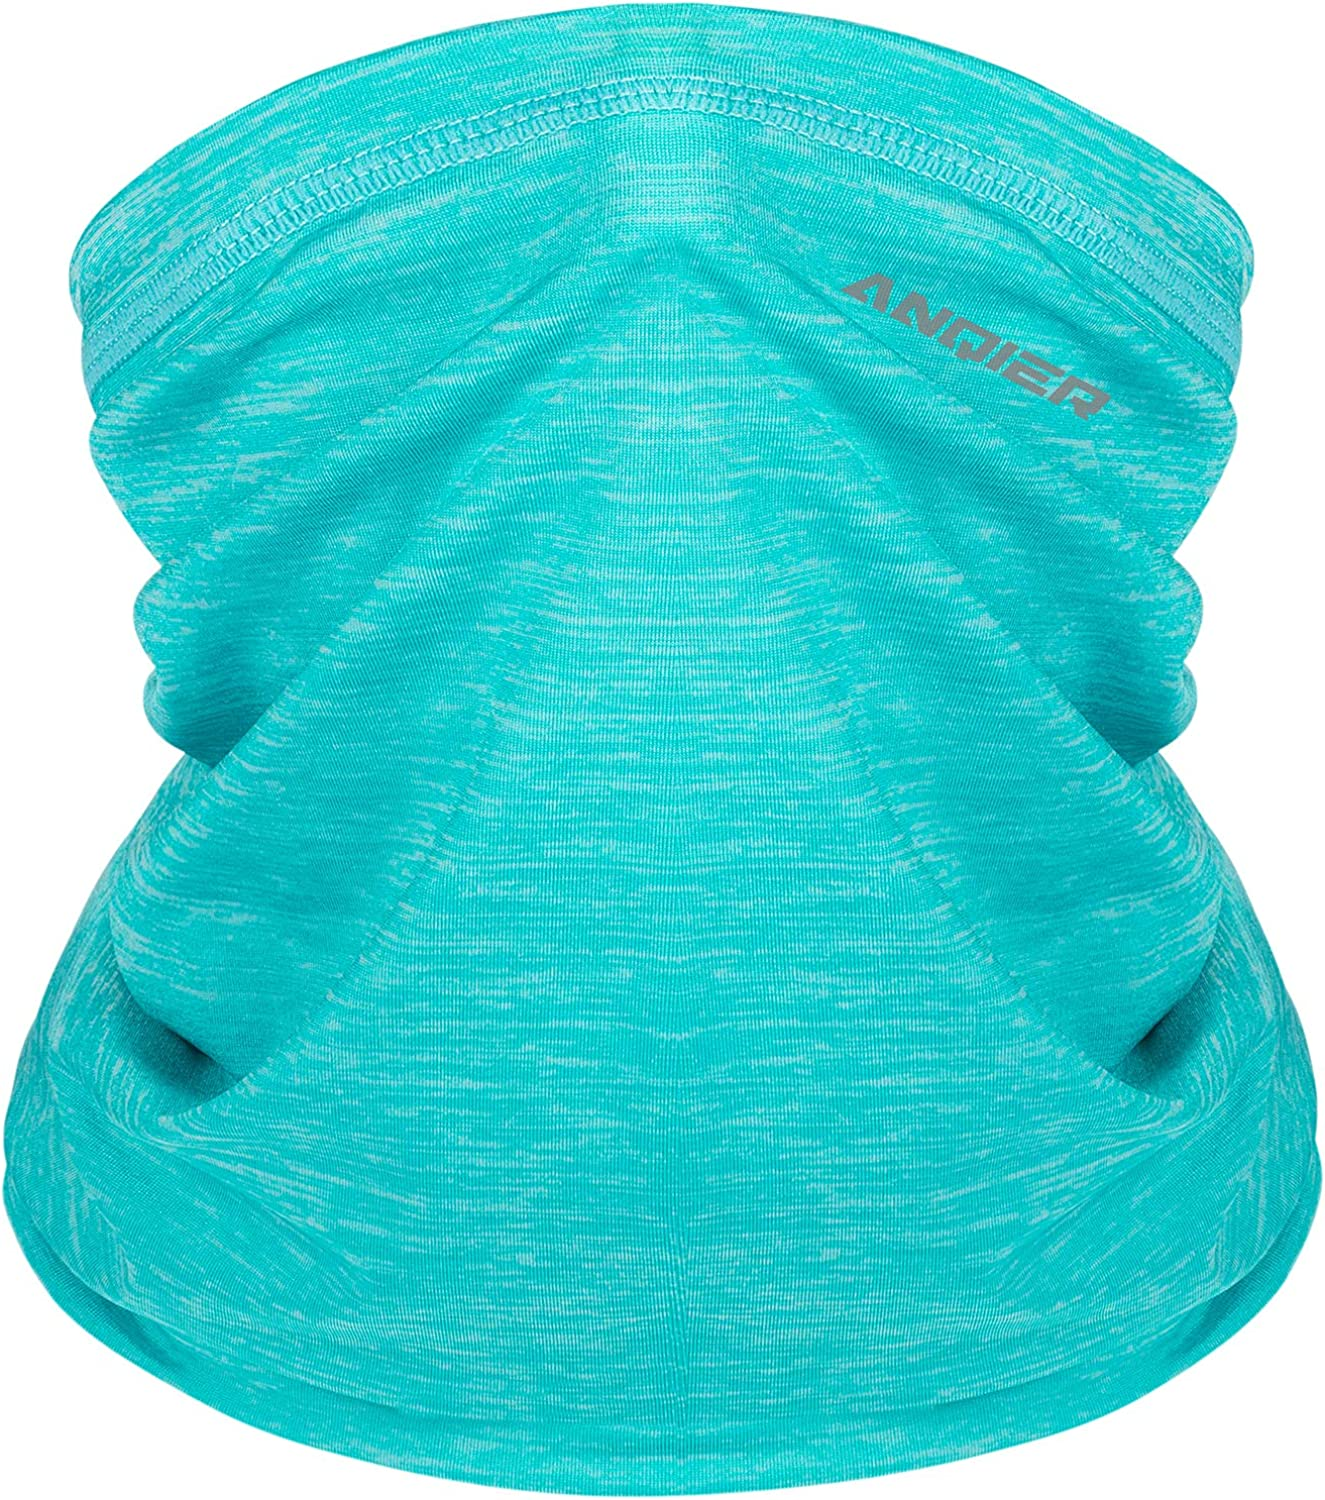 LANHAI Neck Gaiter Sun Protection Face Scarf Summer Cool Bandana Balaclava for Fishing Hiking Running Cycling Outdoors